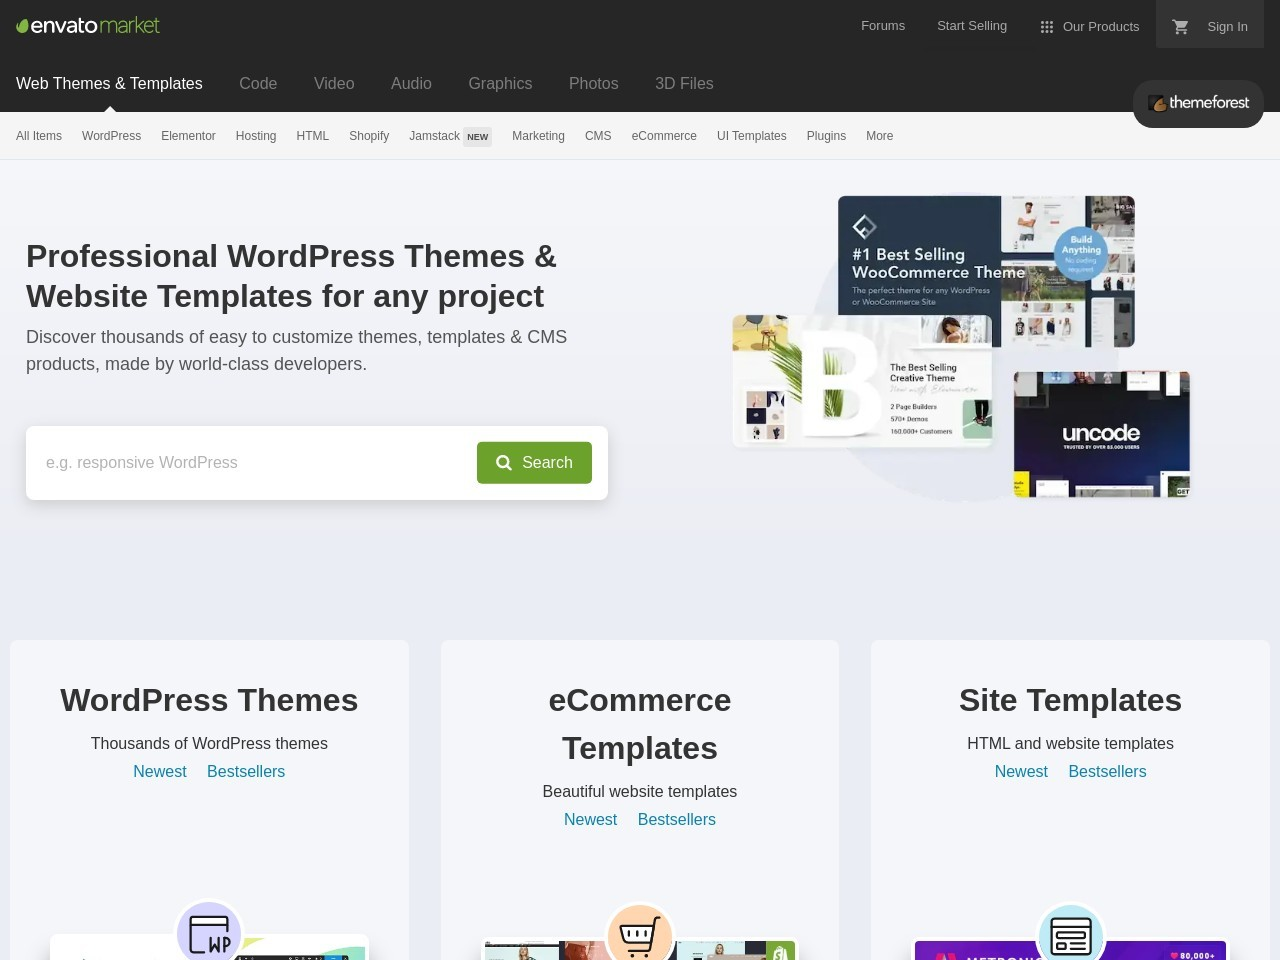 https://themeforest.net/item/wpjobus-job-board-and-resumes-wordpress-theme/8332603